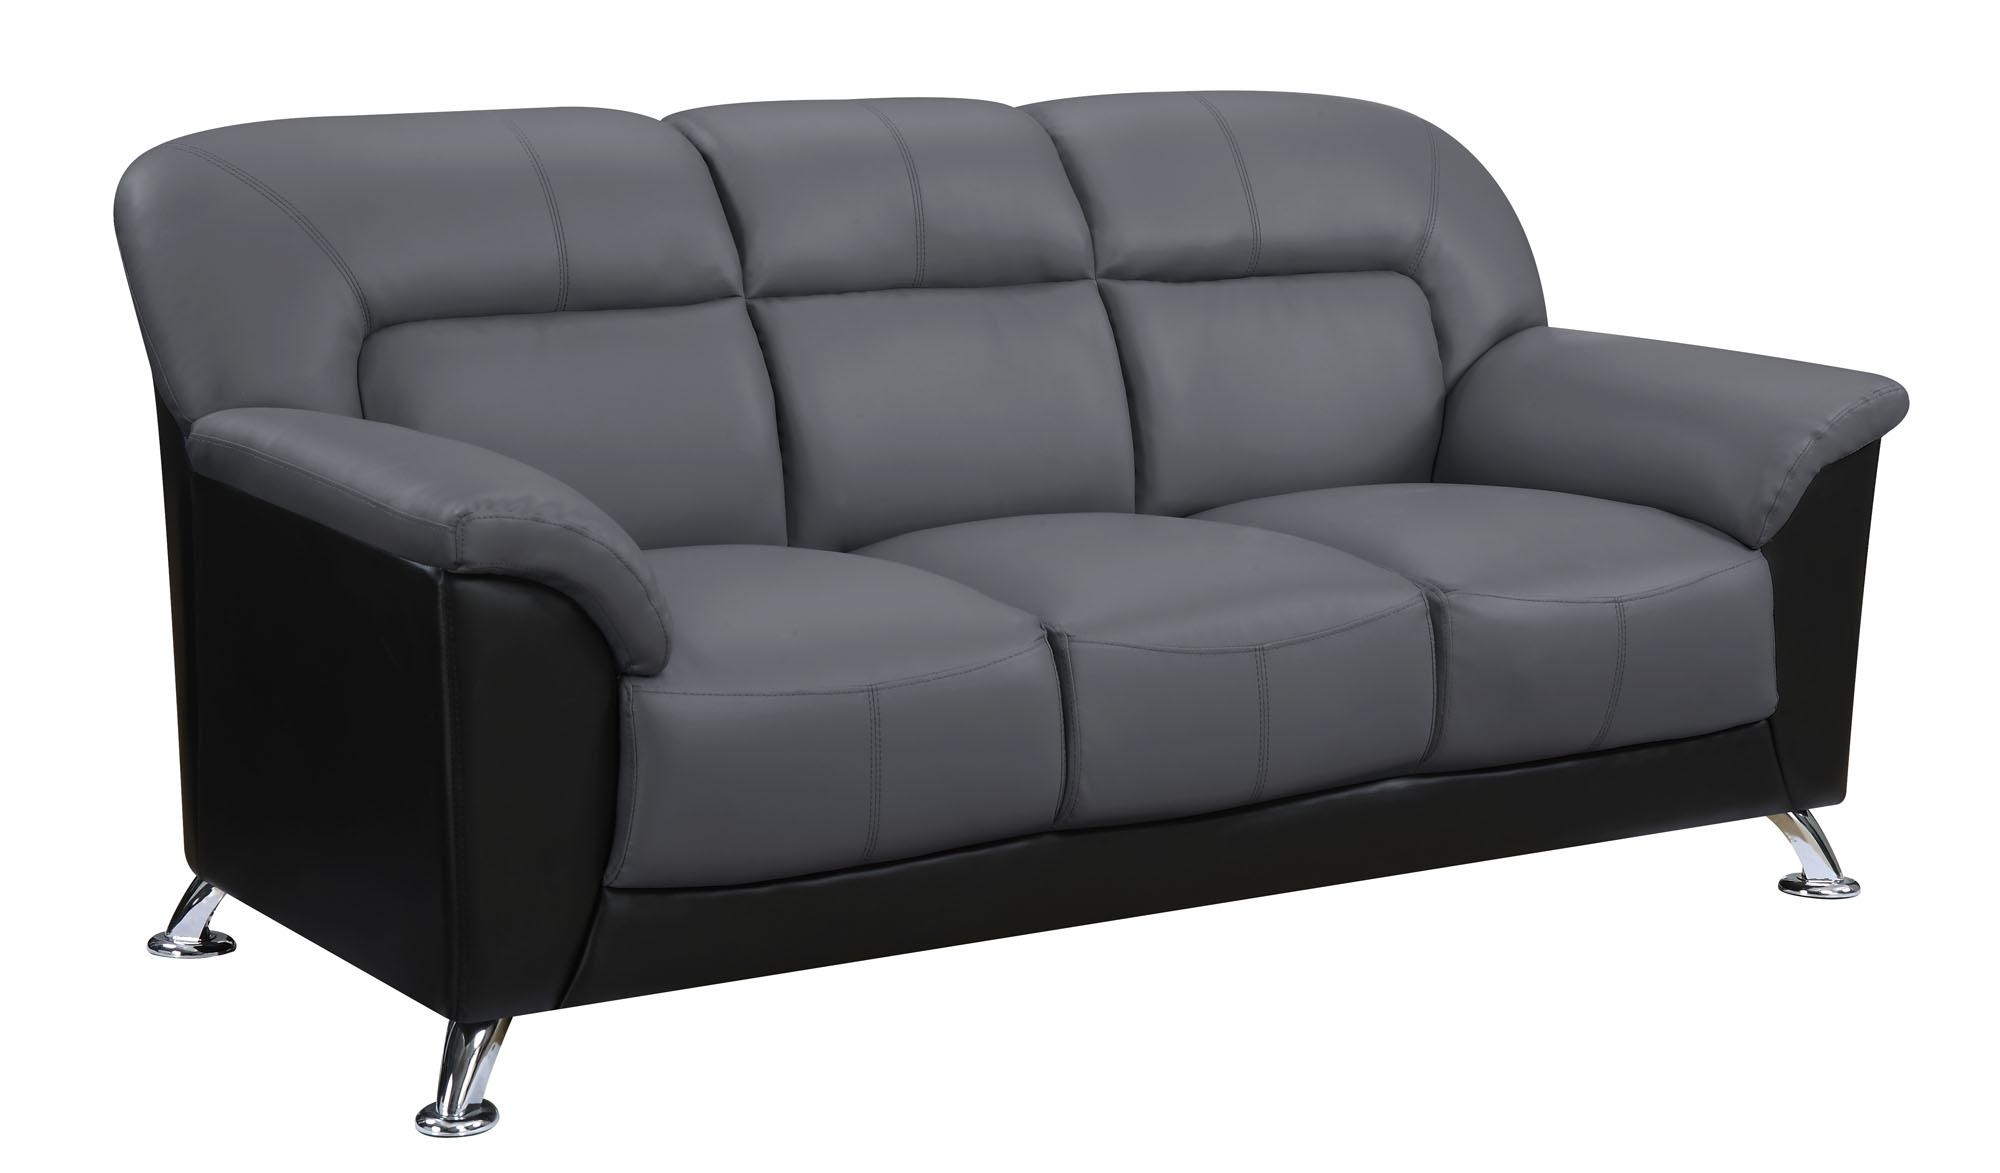 U9102 Dark Grey/black Vinyl Sofaglobal Furniture within Black Vinyl Sofas